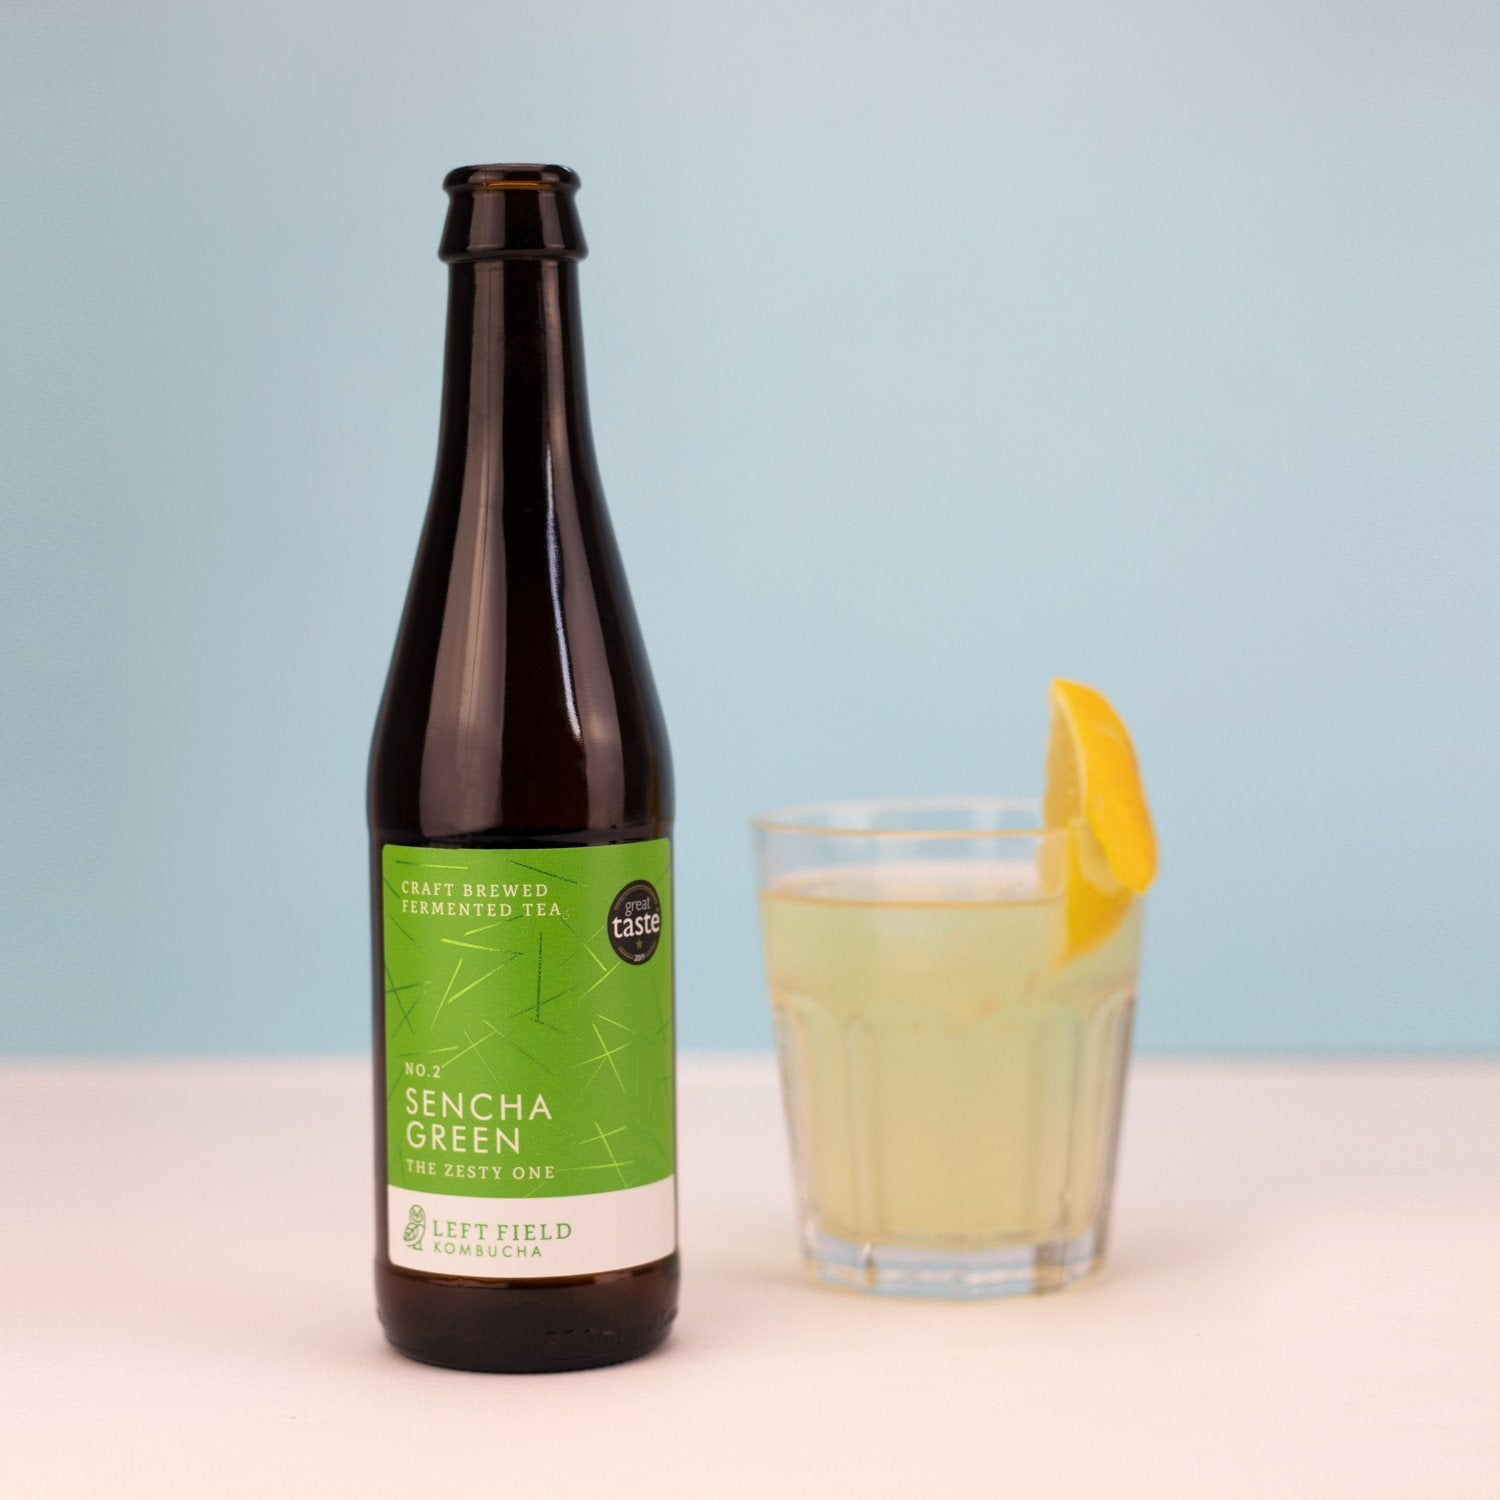 No.2 Sencha Green kombucha tea